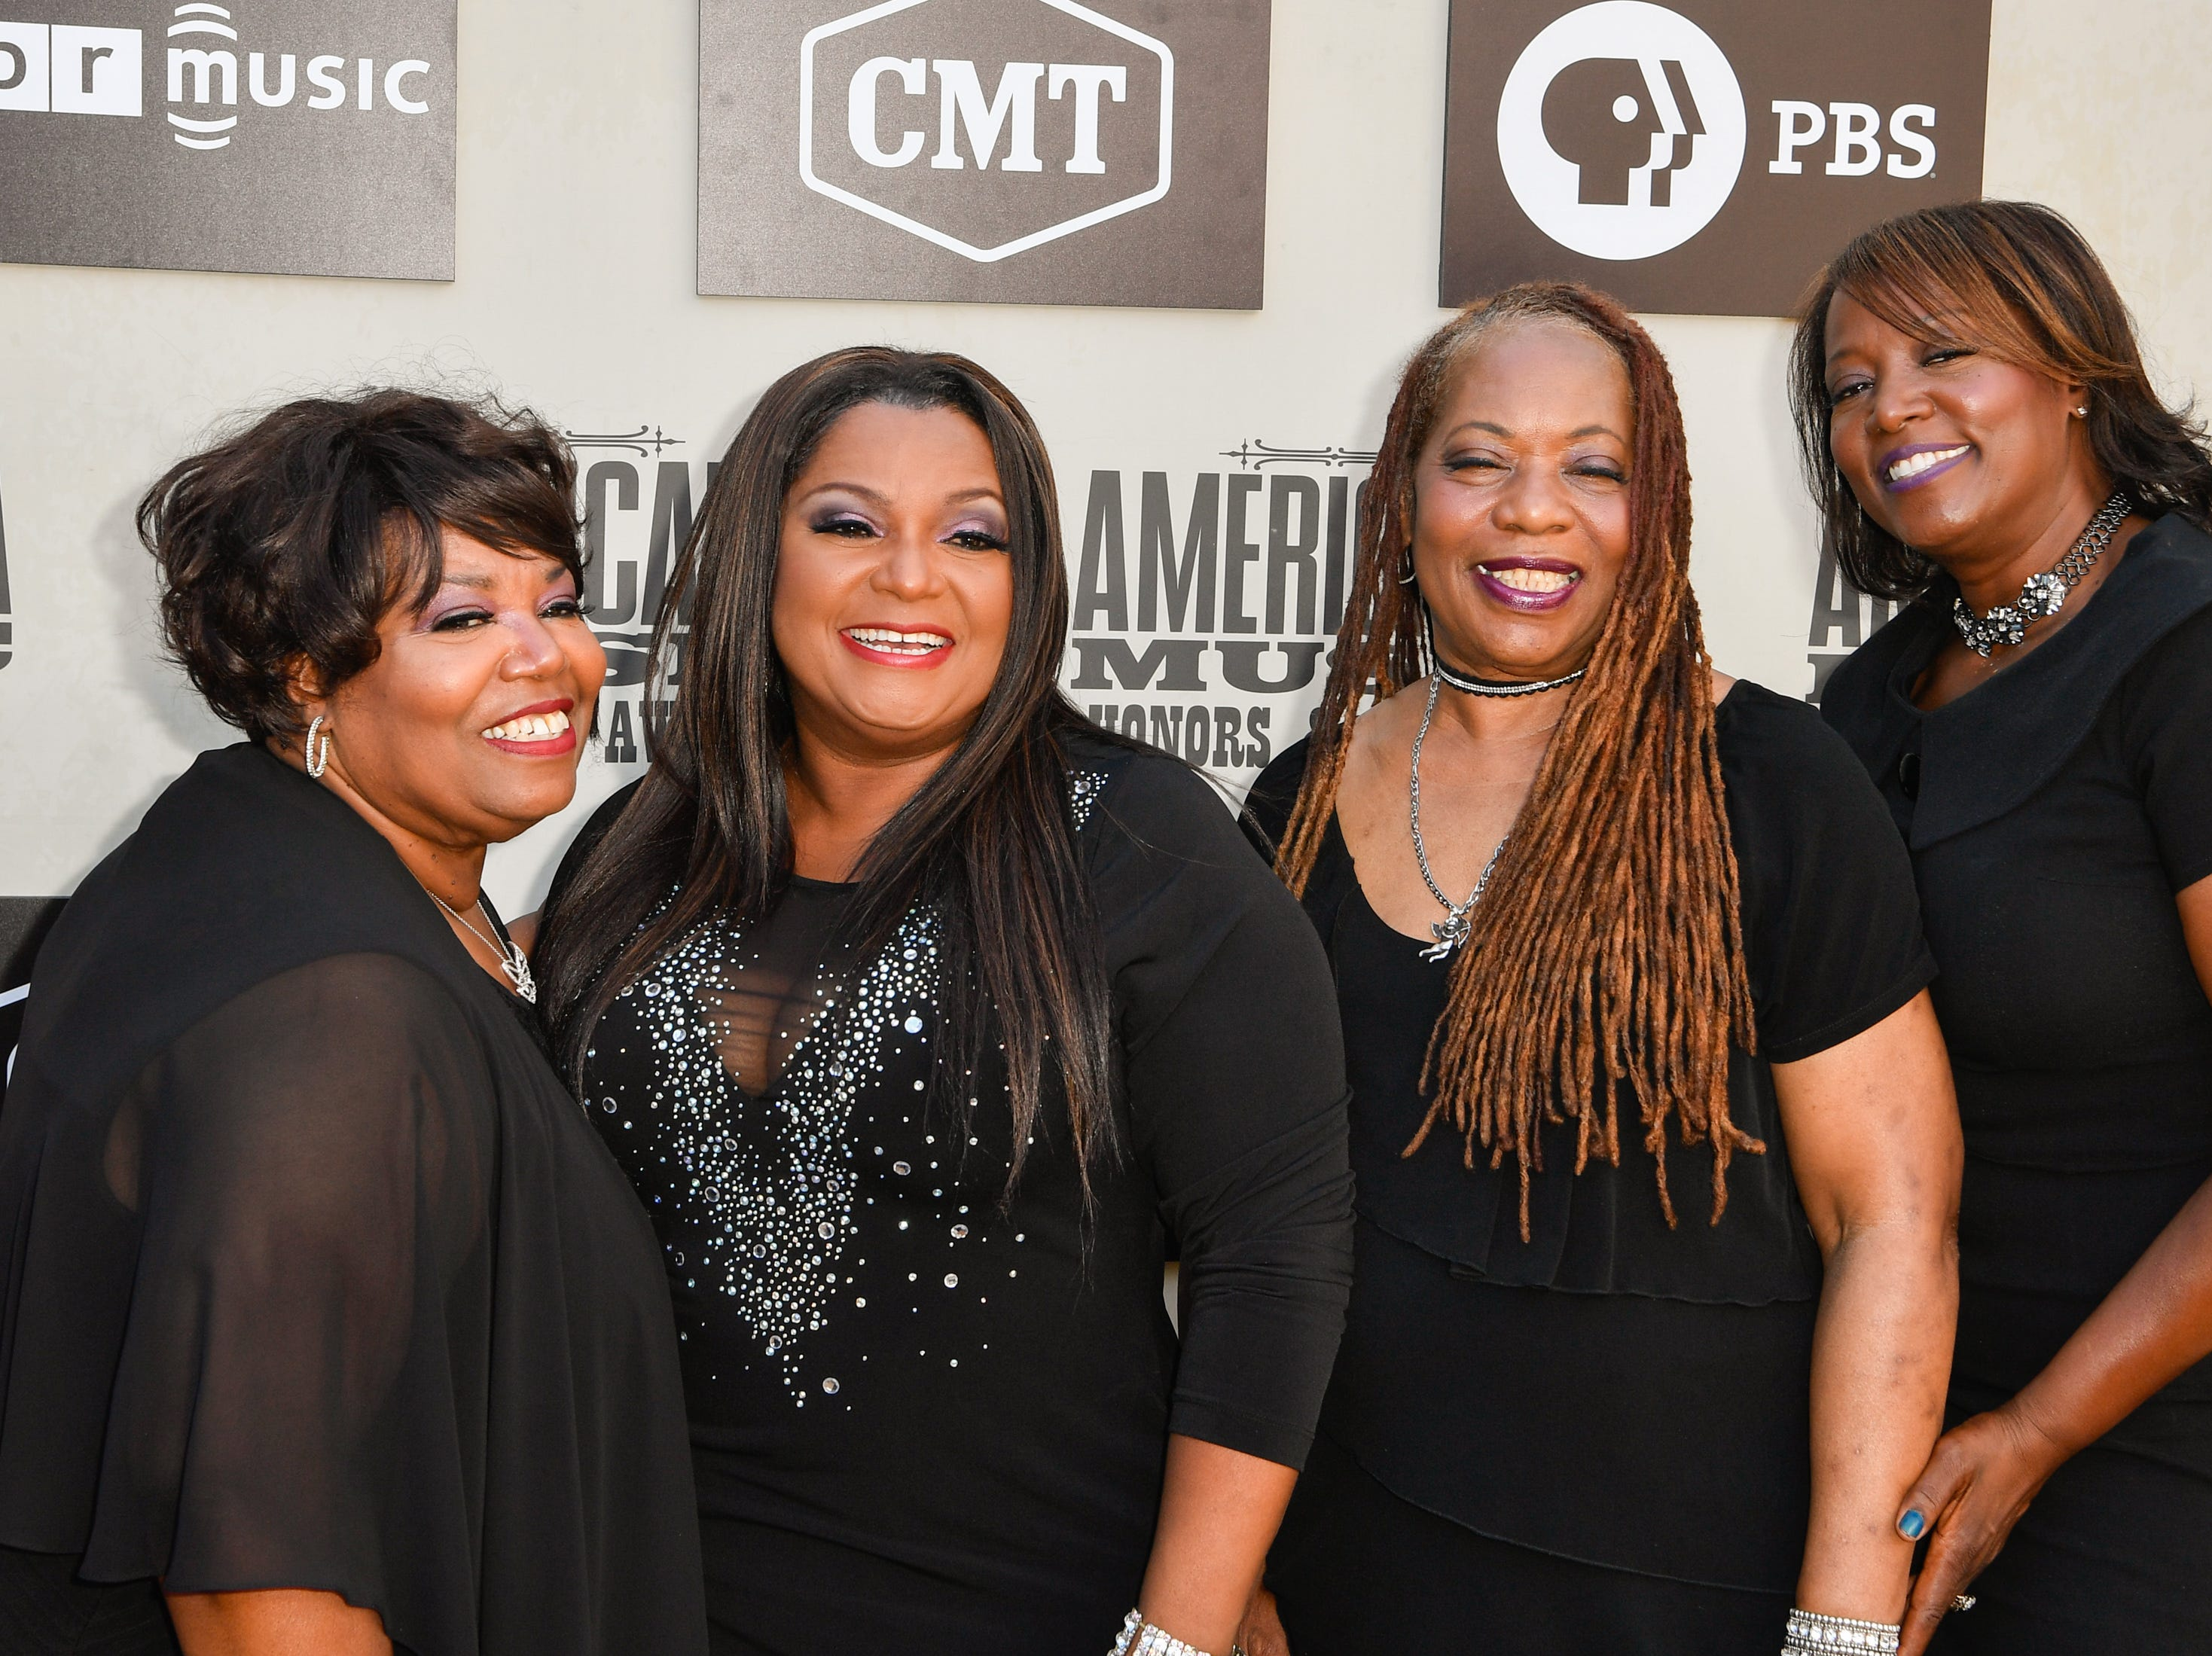 The McCrary Sisters pose on the red carpet before the 2018 Americana Honors and Awards show at the Ryman Auditorium in Nashville, Tenn., Wednesday, Sept. 12, 2018.